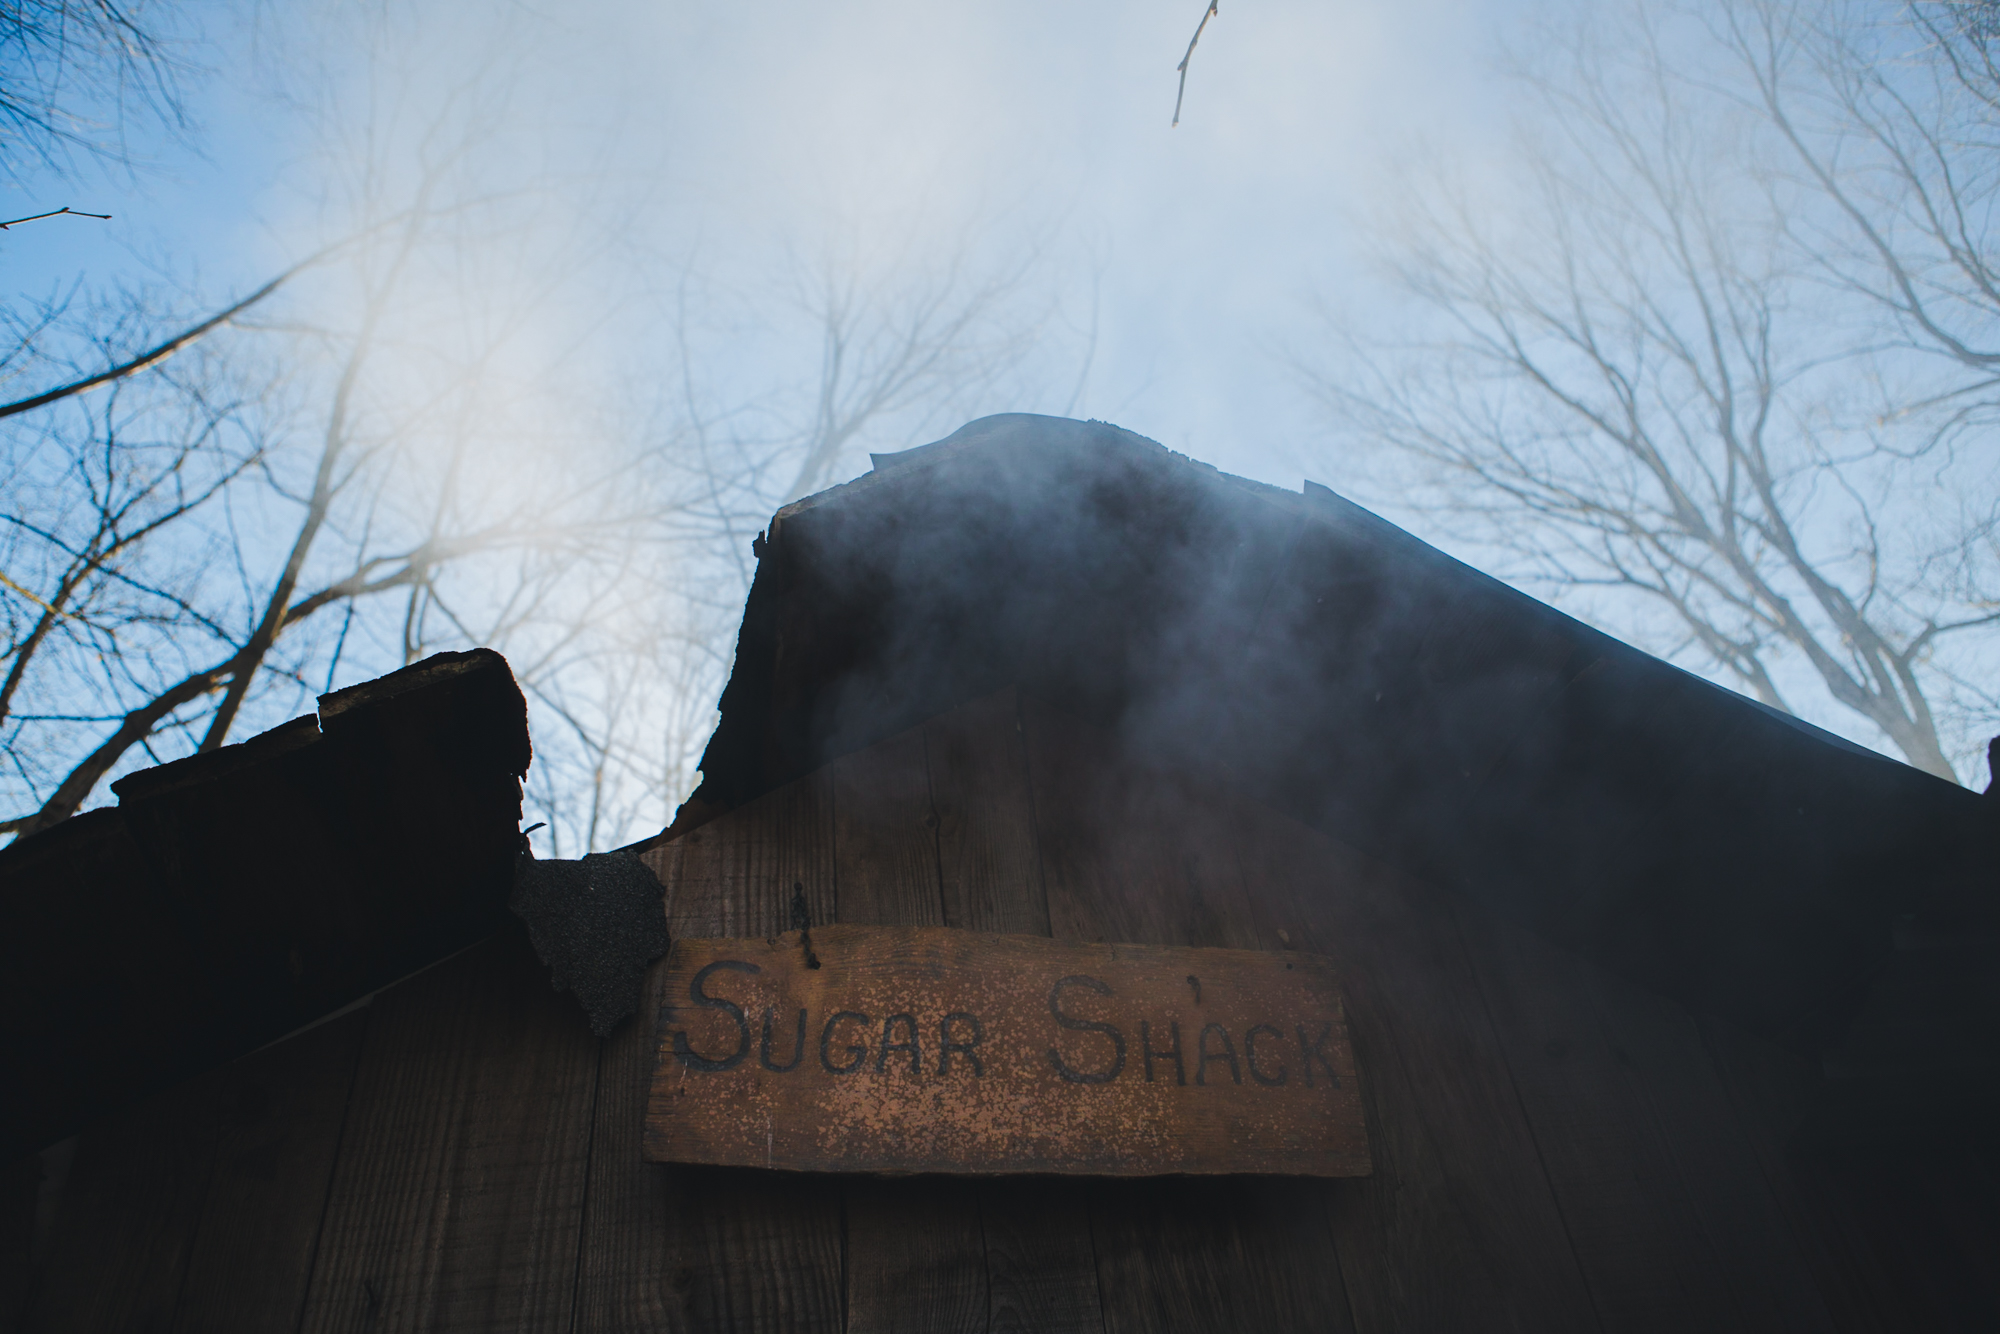 sugarshack_006.jpg